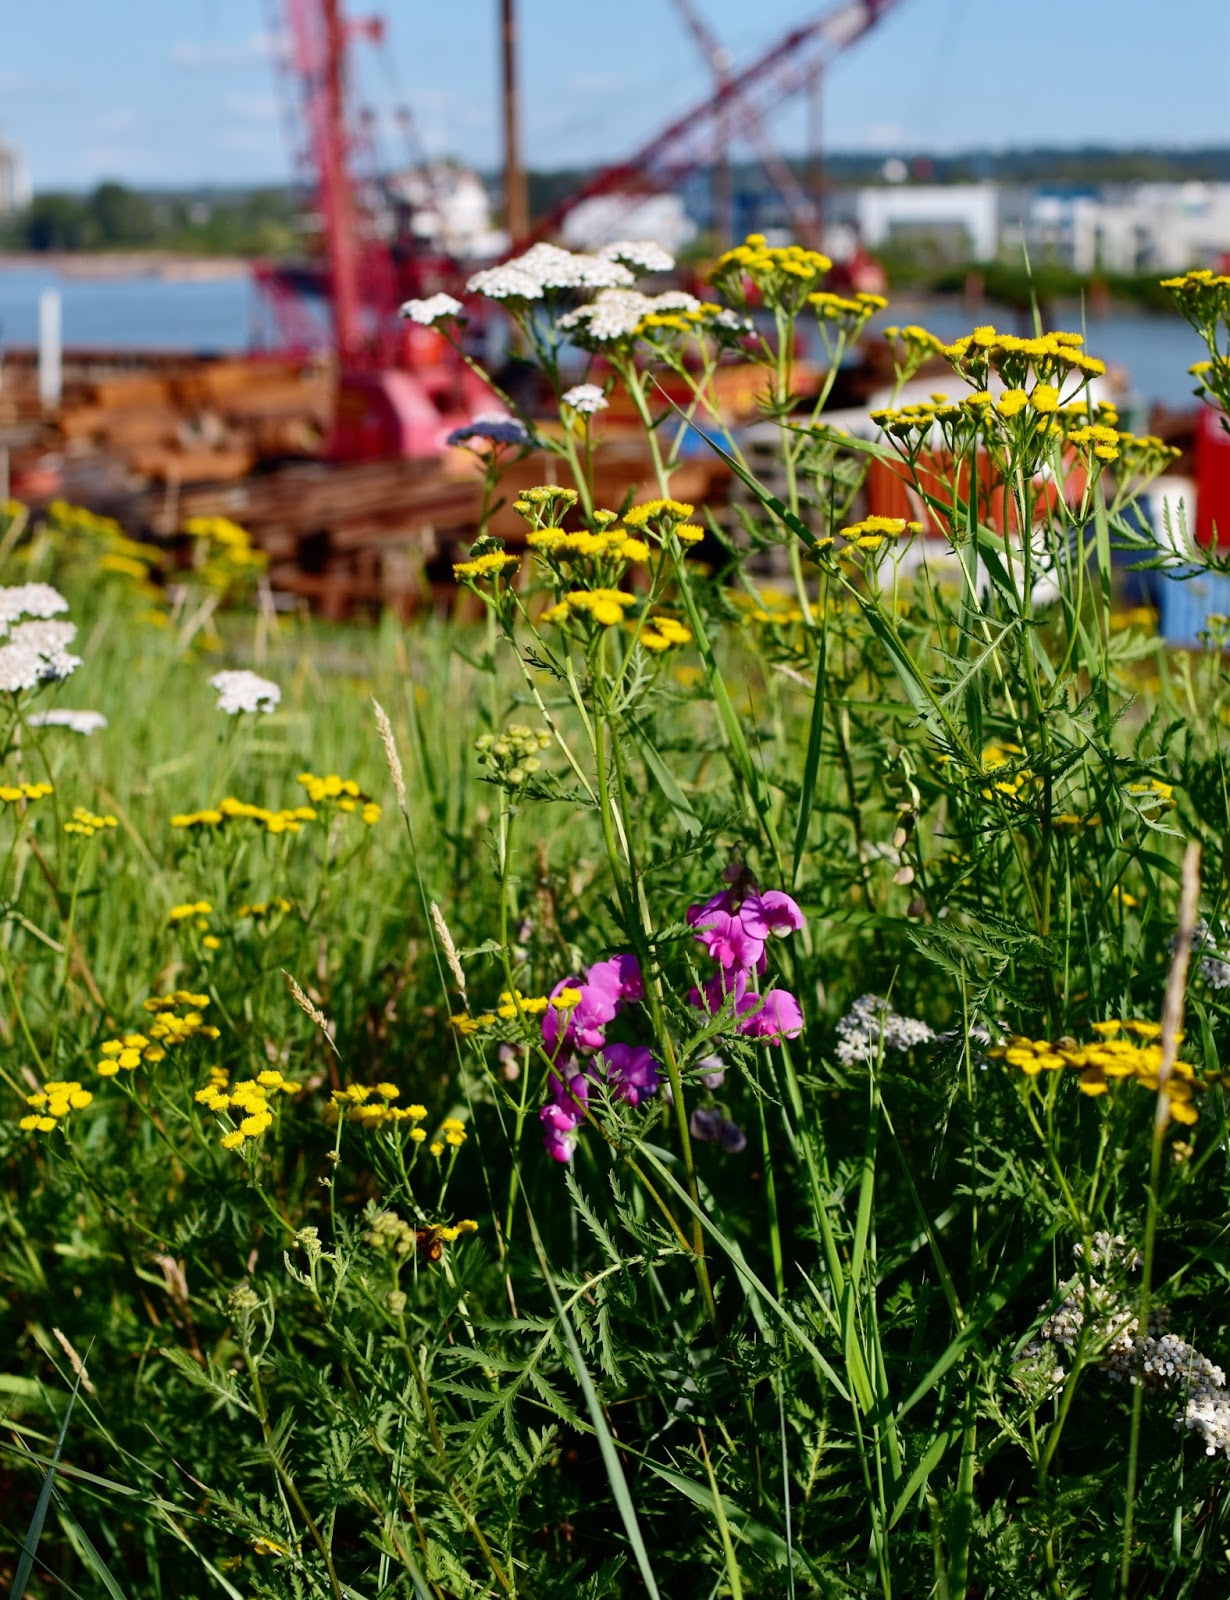 wildflowers on the bank of the Fraser River, Vancouver